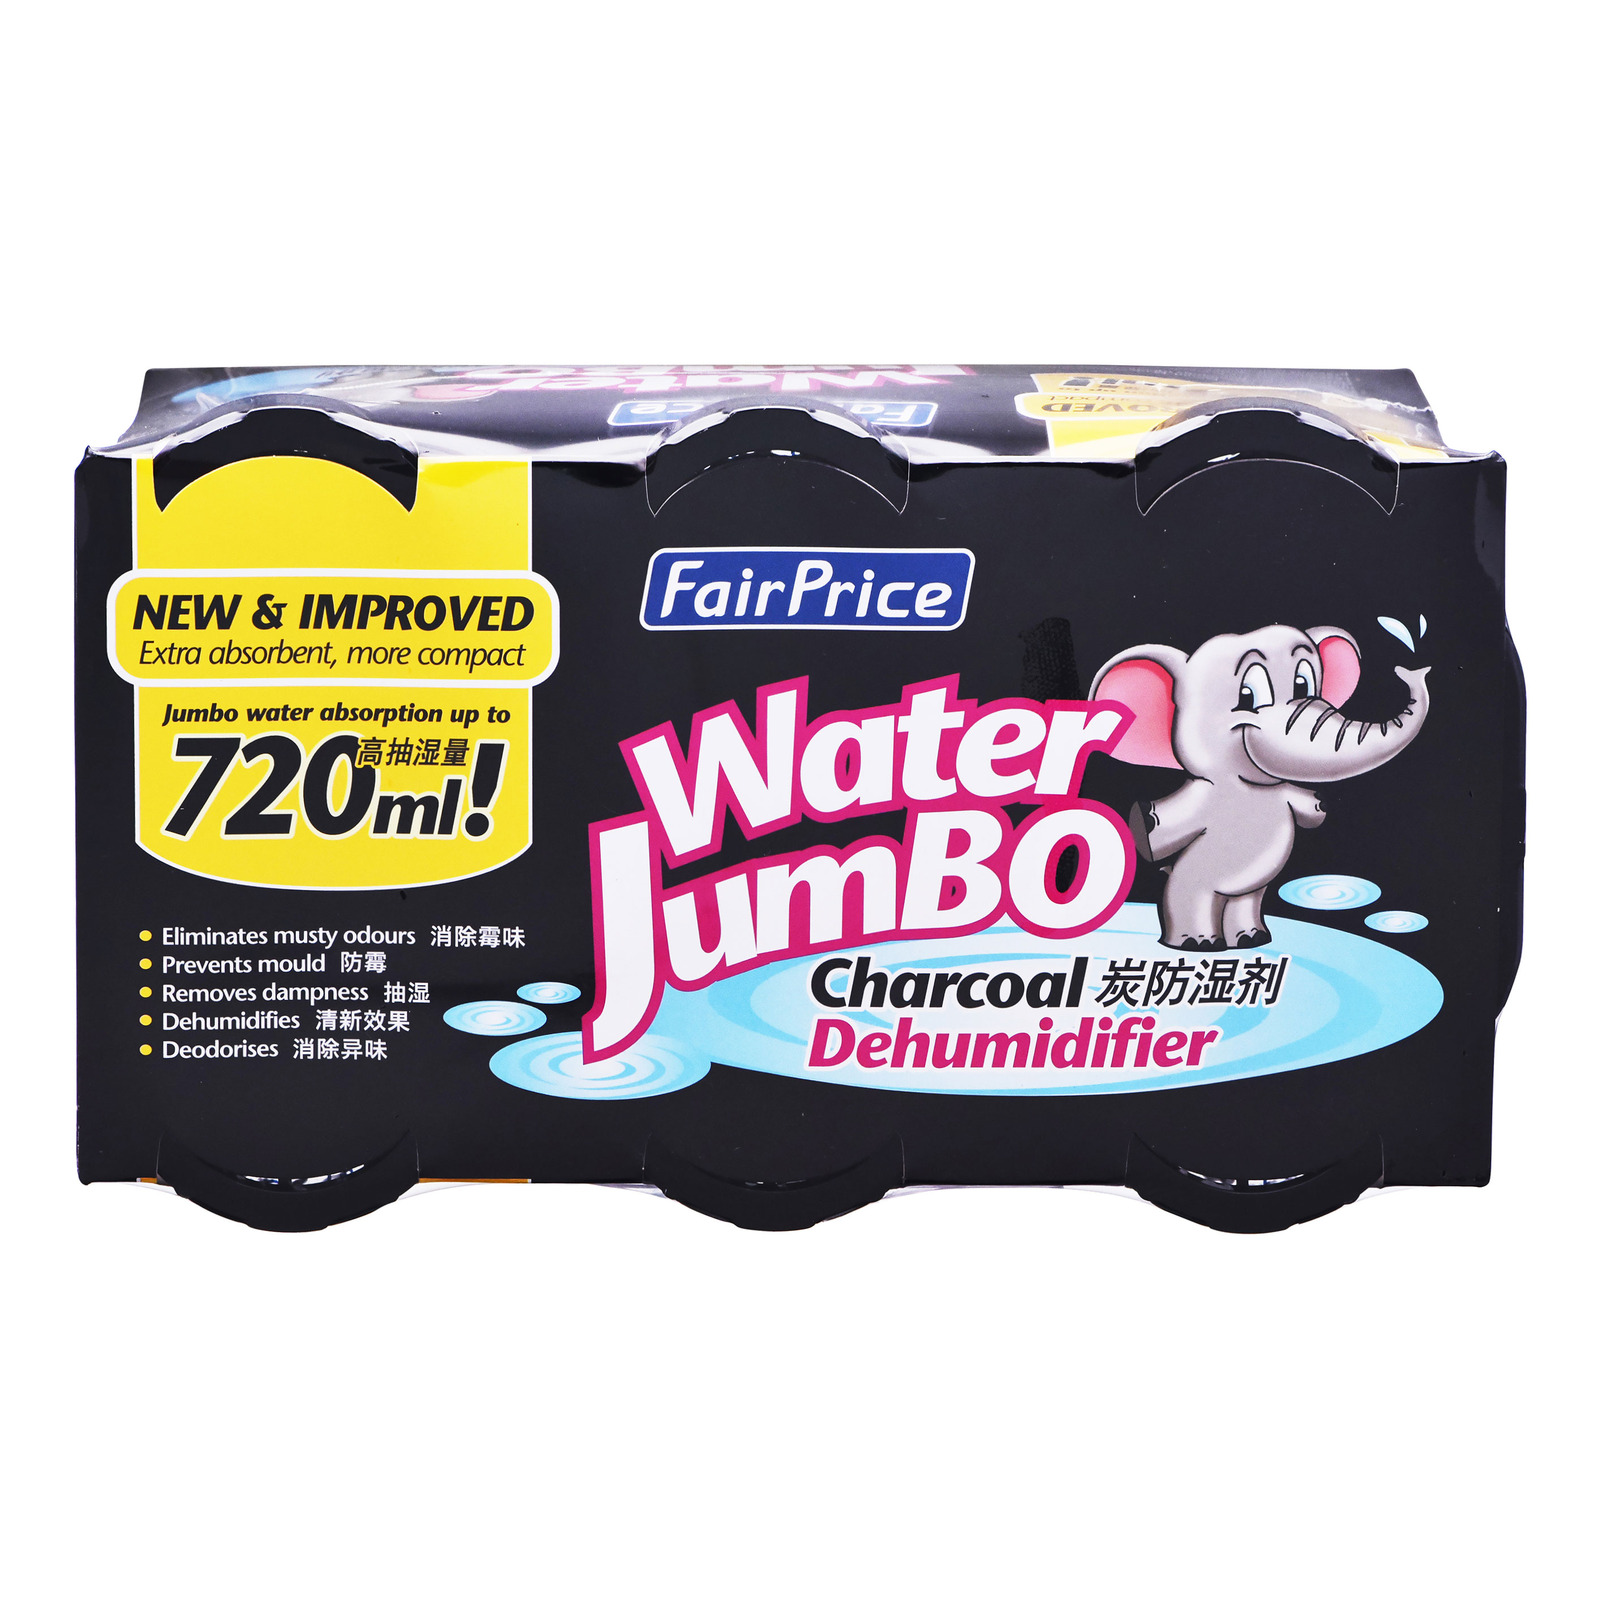 FairPrice Water Jumbo Charcoal Dehumidifier